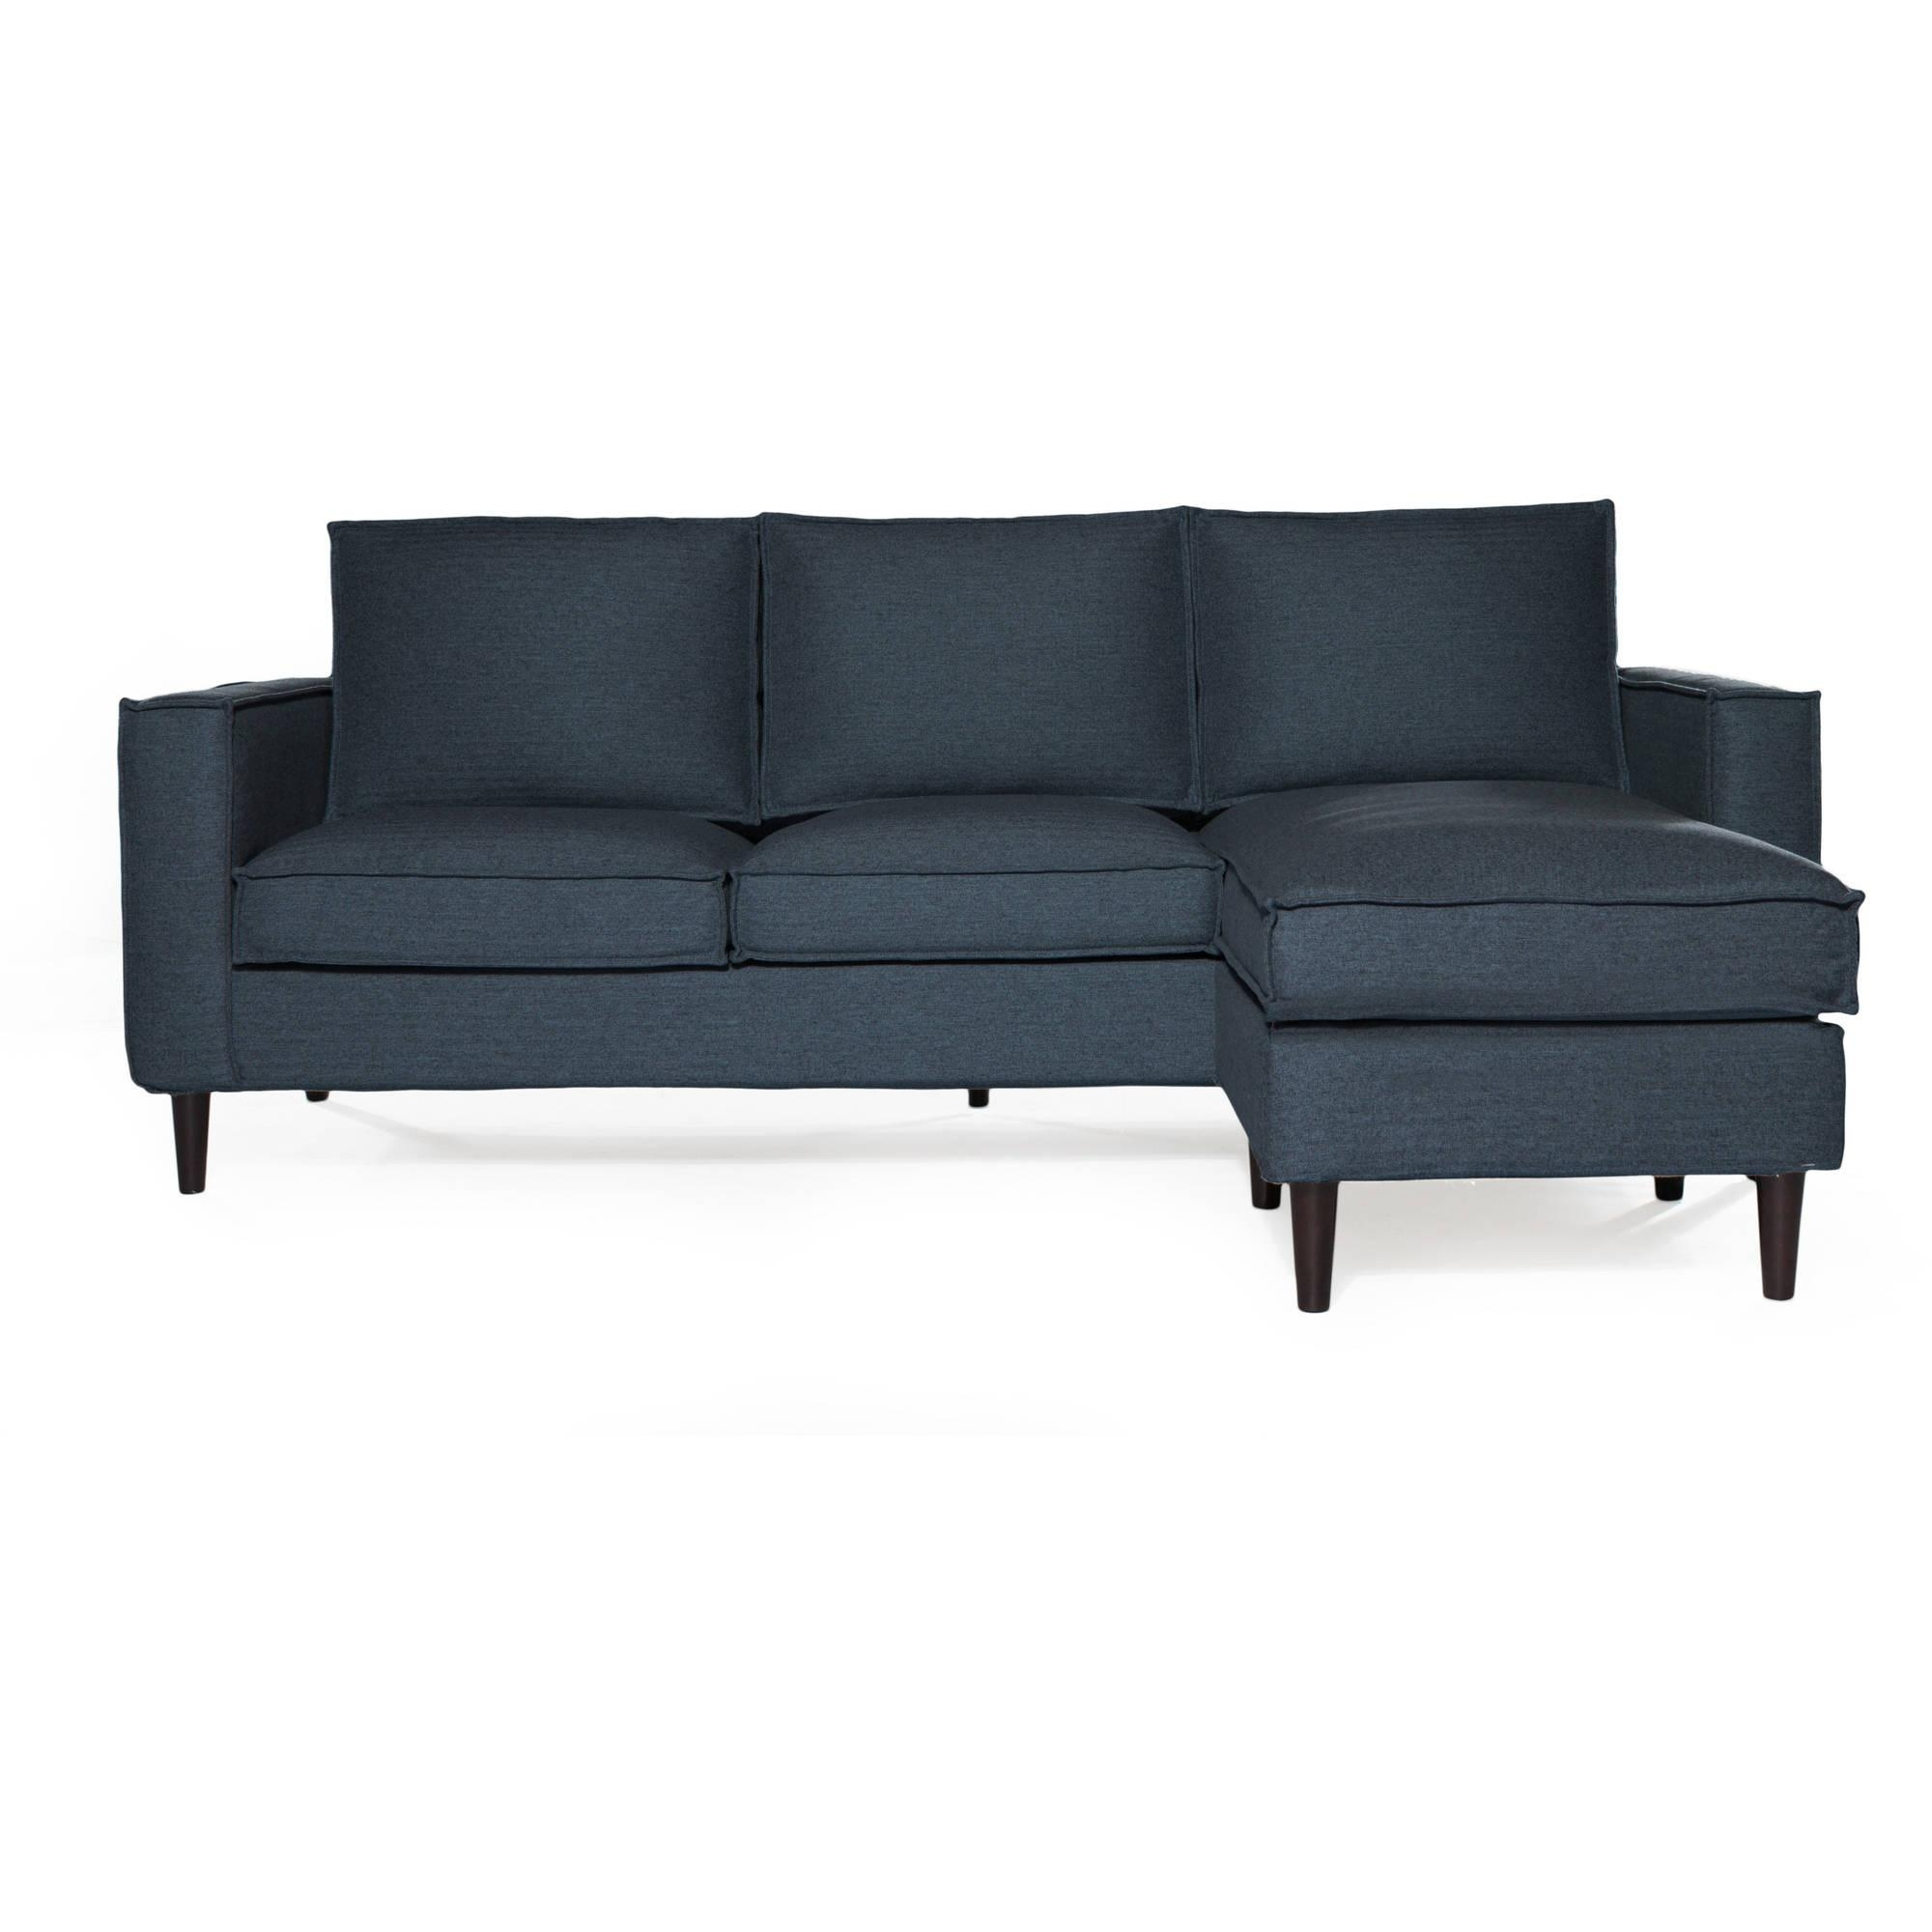 Sectional Sofas Tampa Fl – Leather Sectional Sofa Pertaining To Stacey Leather Sectional (Image 11 of 20)